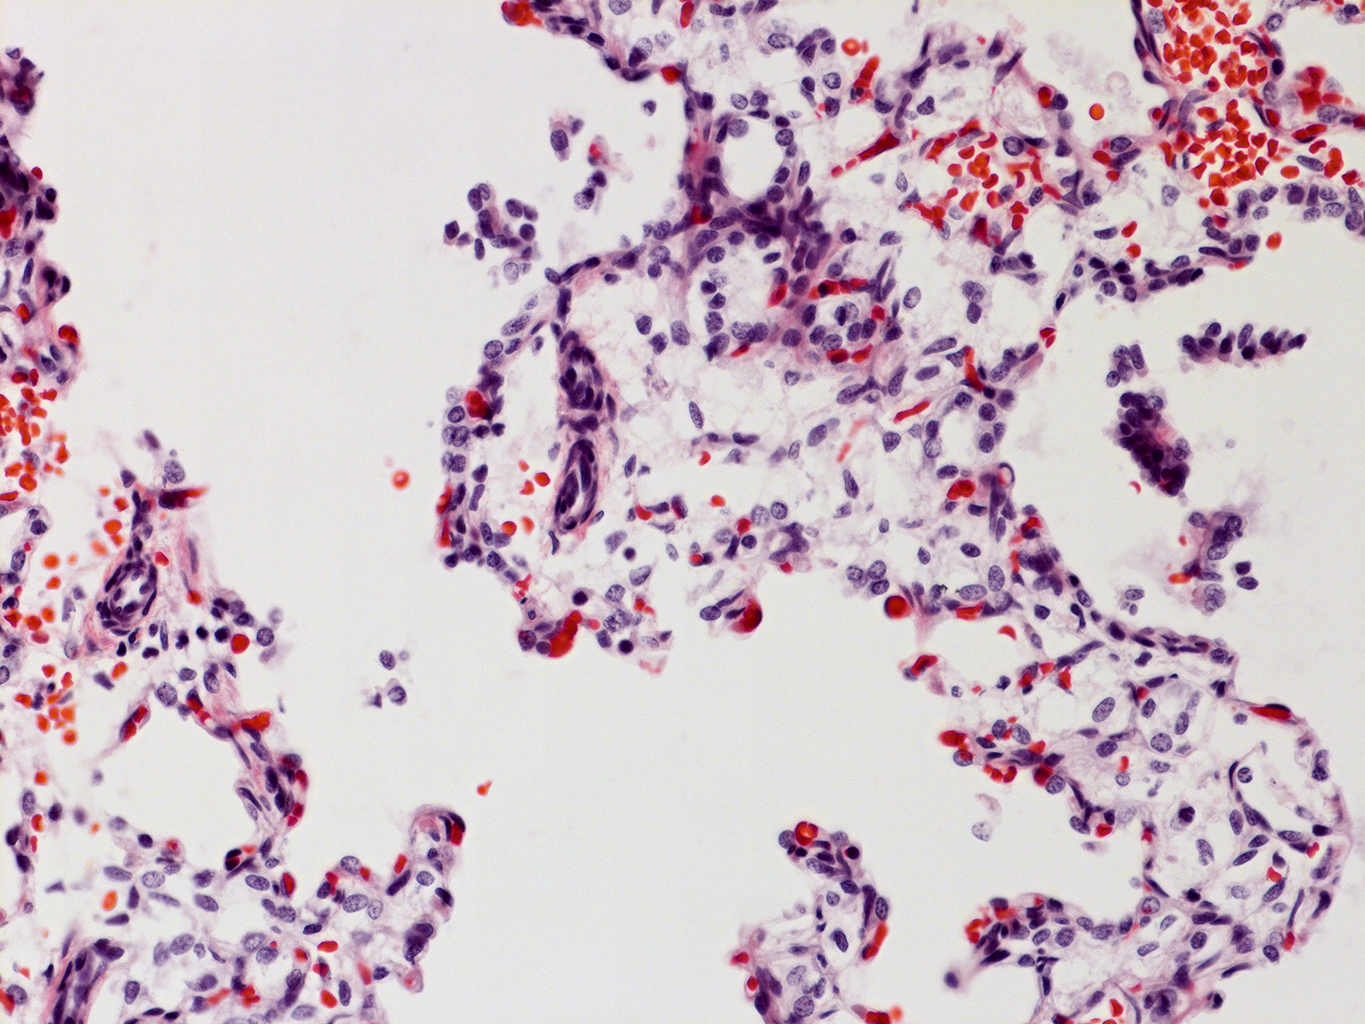 H&E Staining of 1 Day-Old Human Donor D150-3A2.26